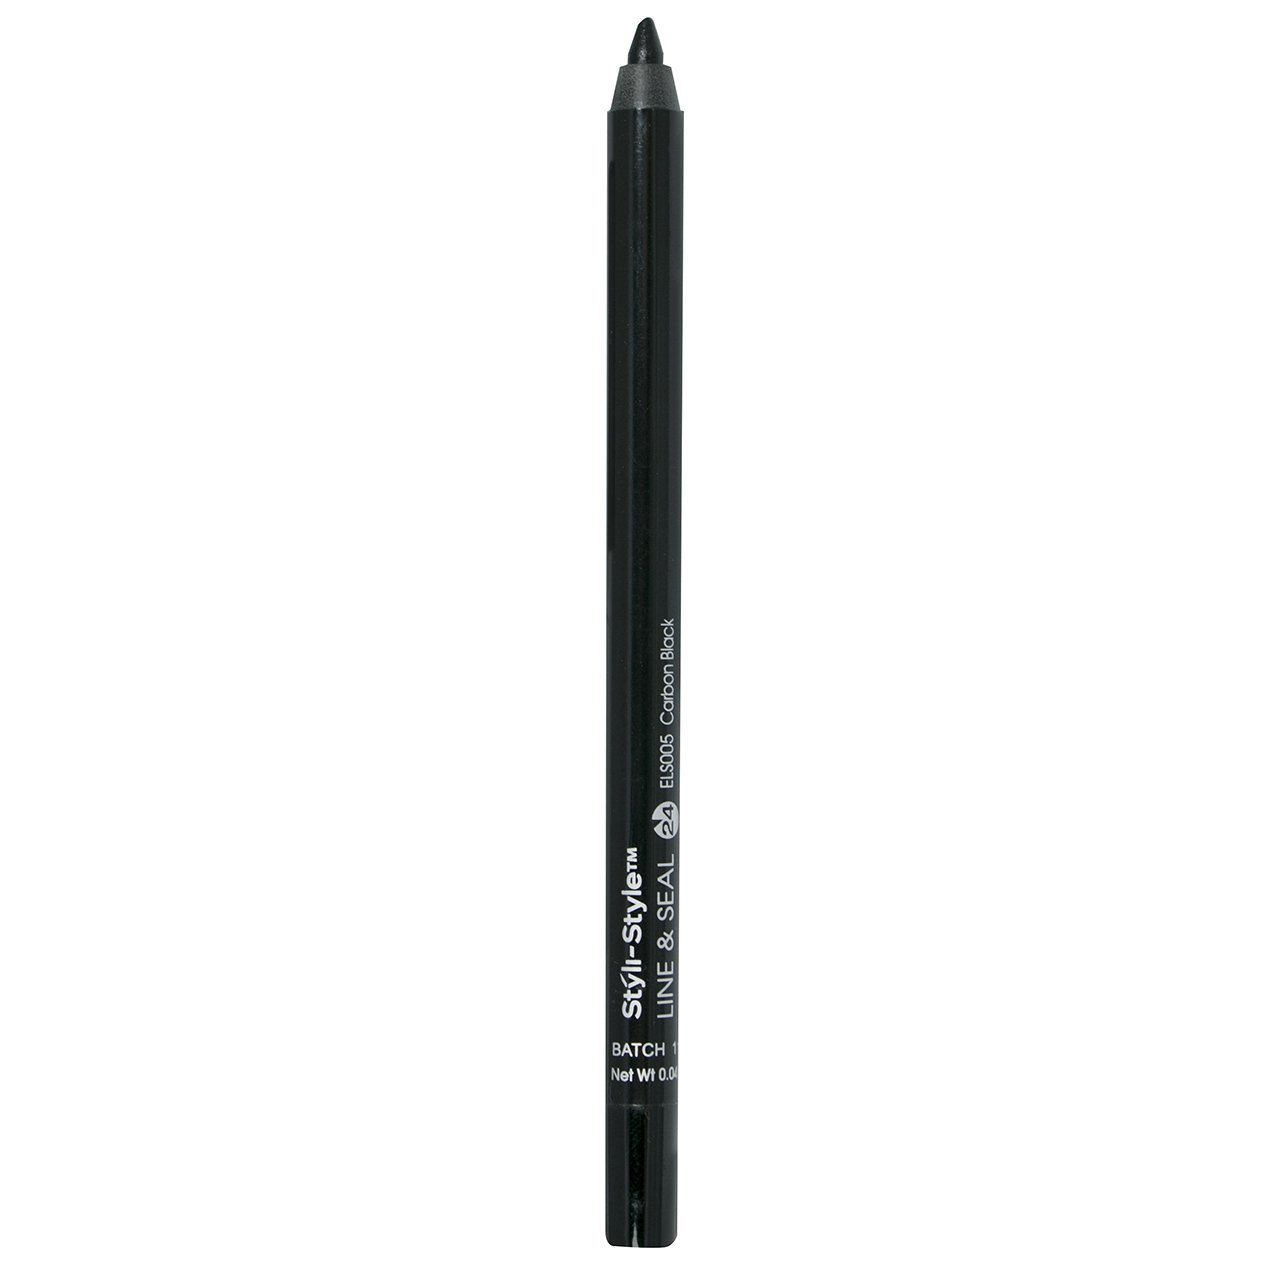 Styli-Style Line & Seal Semi-Permanent Eye Liner 005 Carbon Black